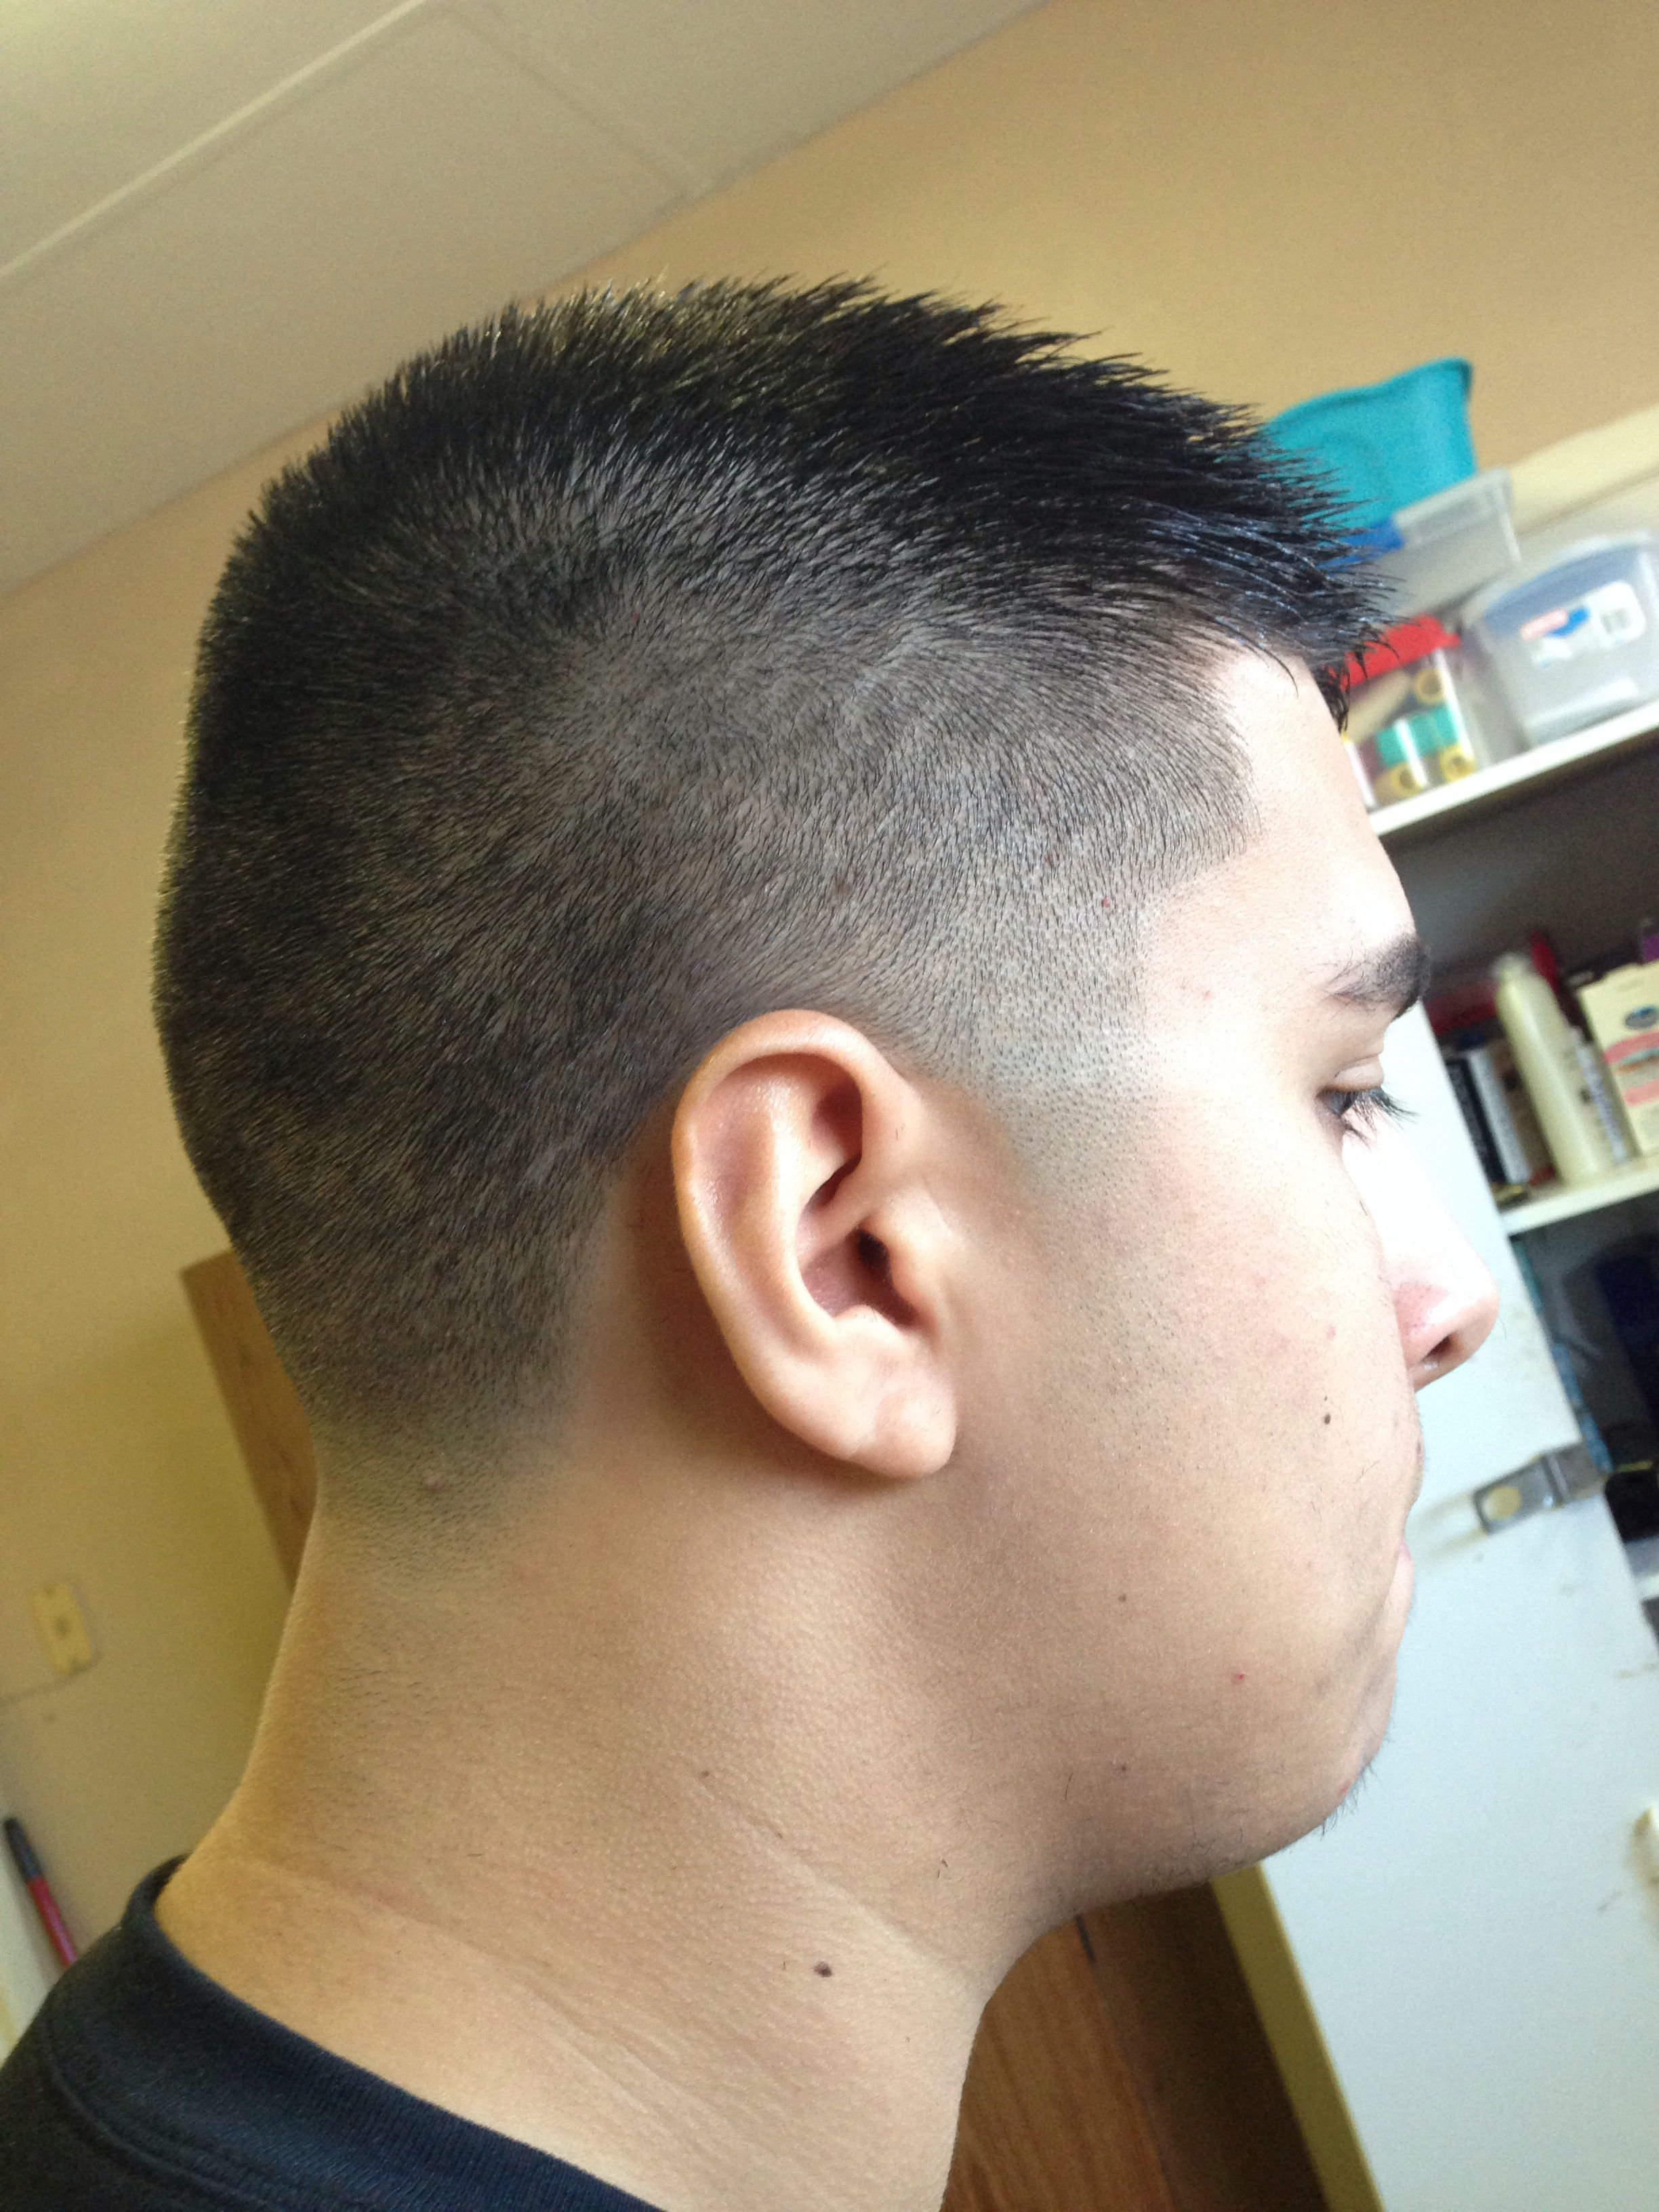 Mens Hair Cut 1 12 High Fade With Taper From Skin My Work